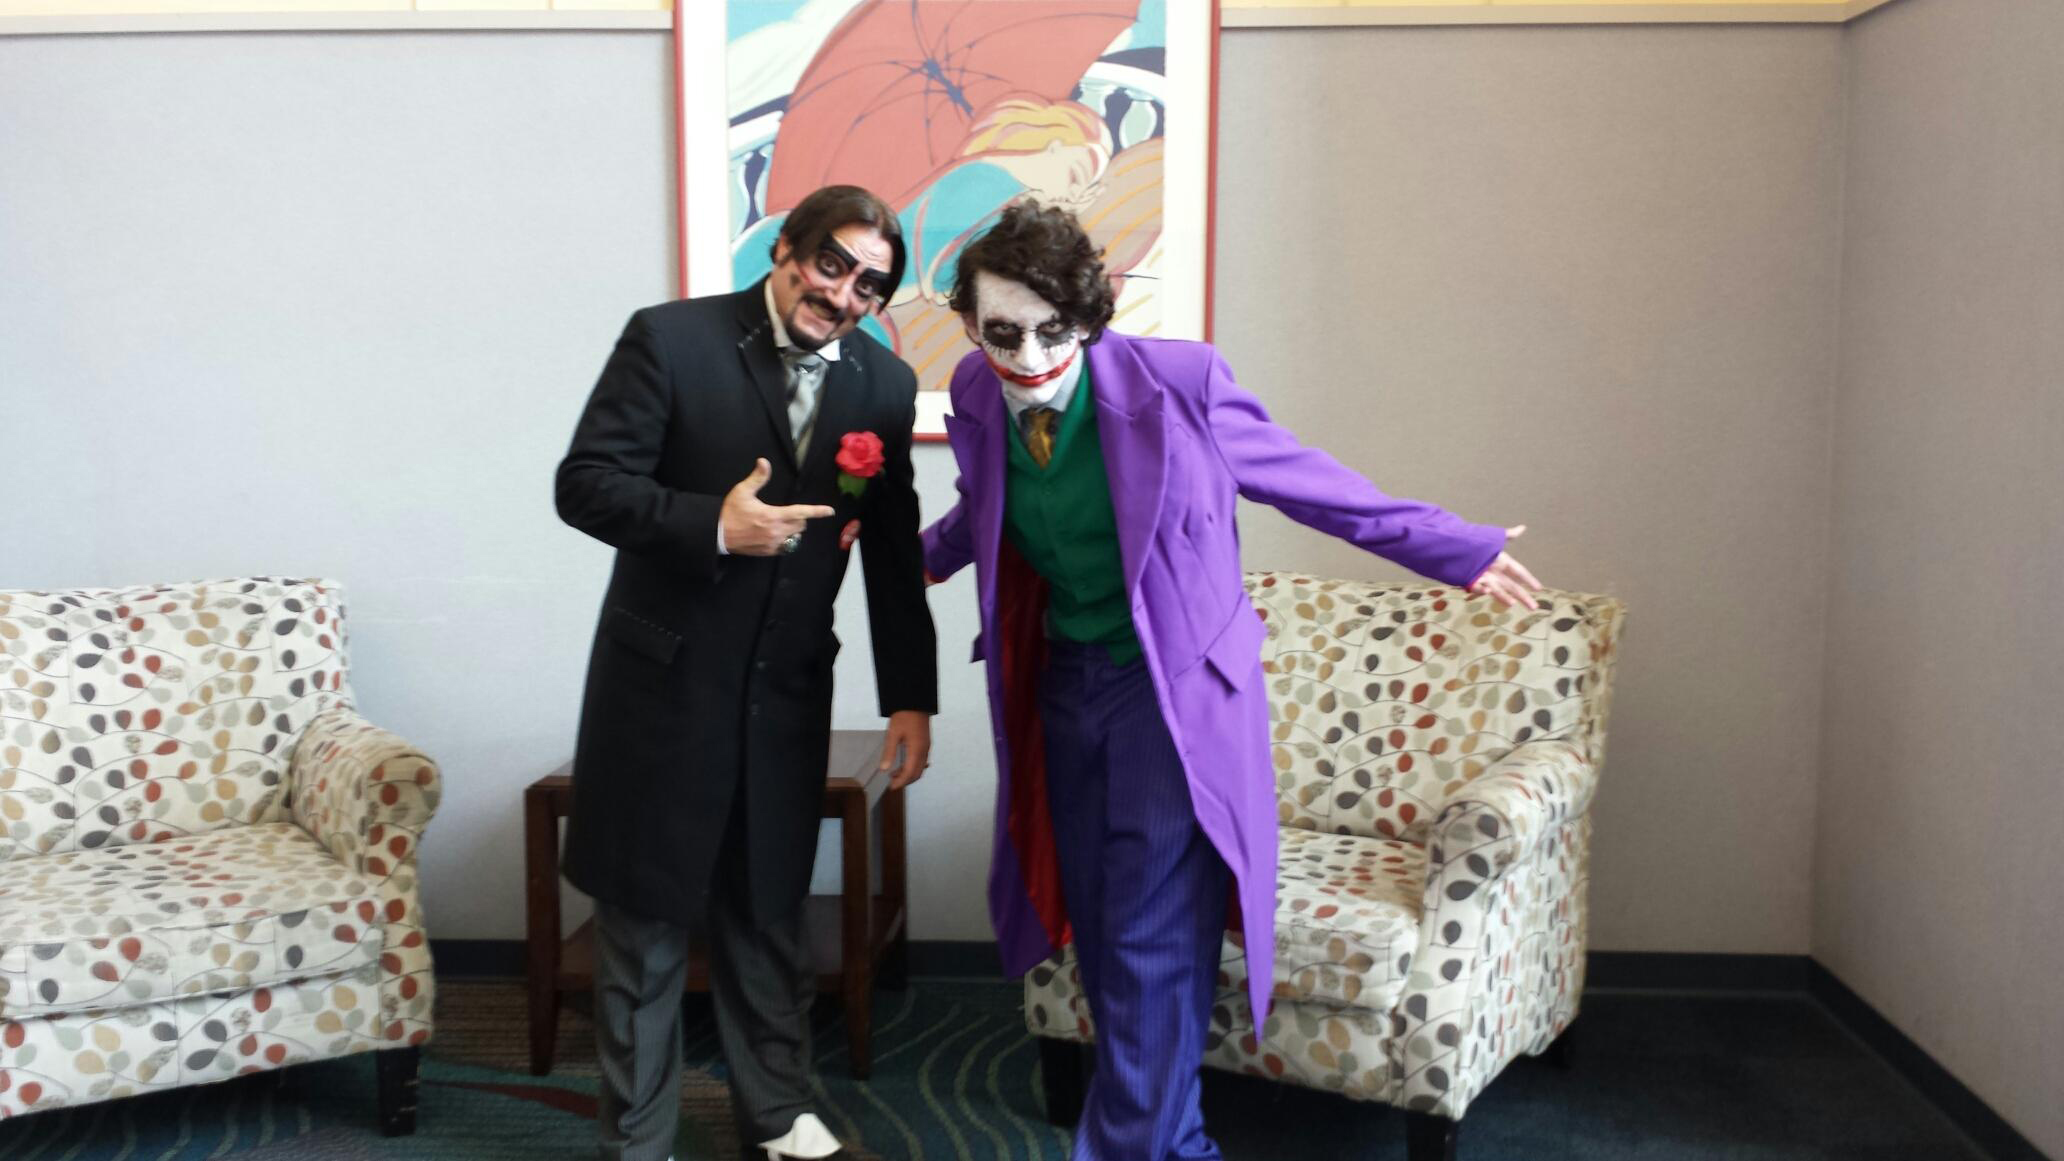 Dr. Paul Bearer with the Joker.